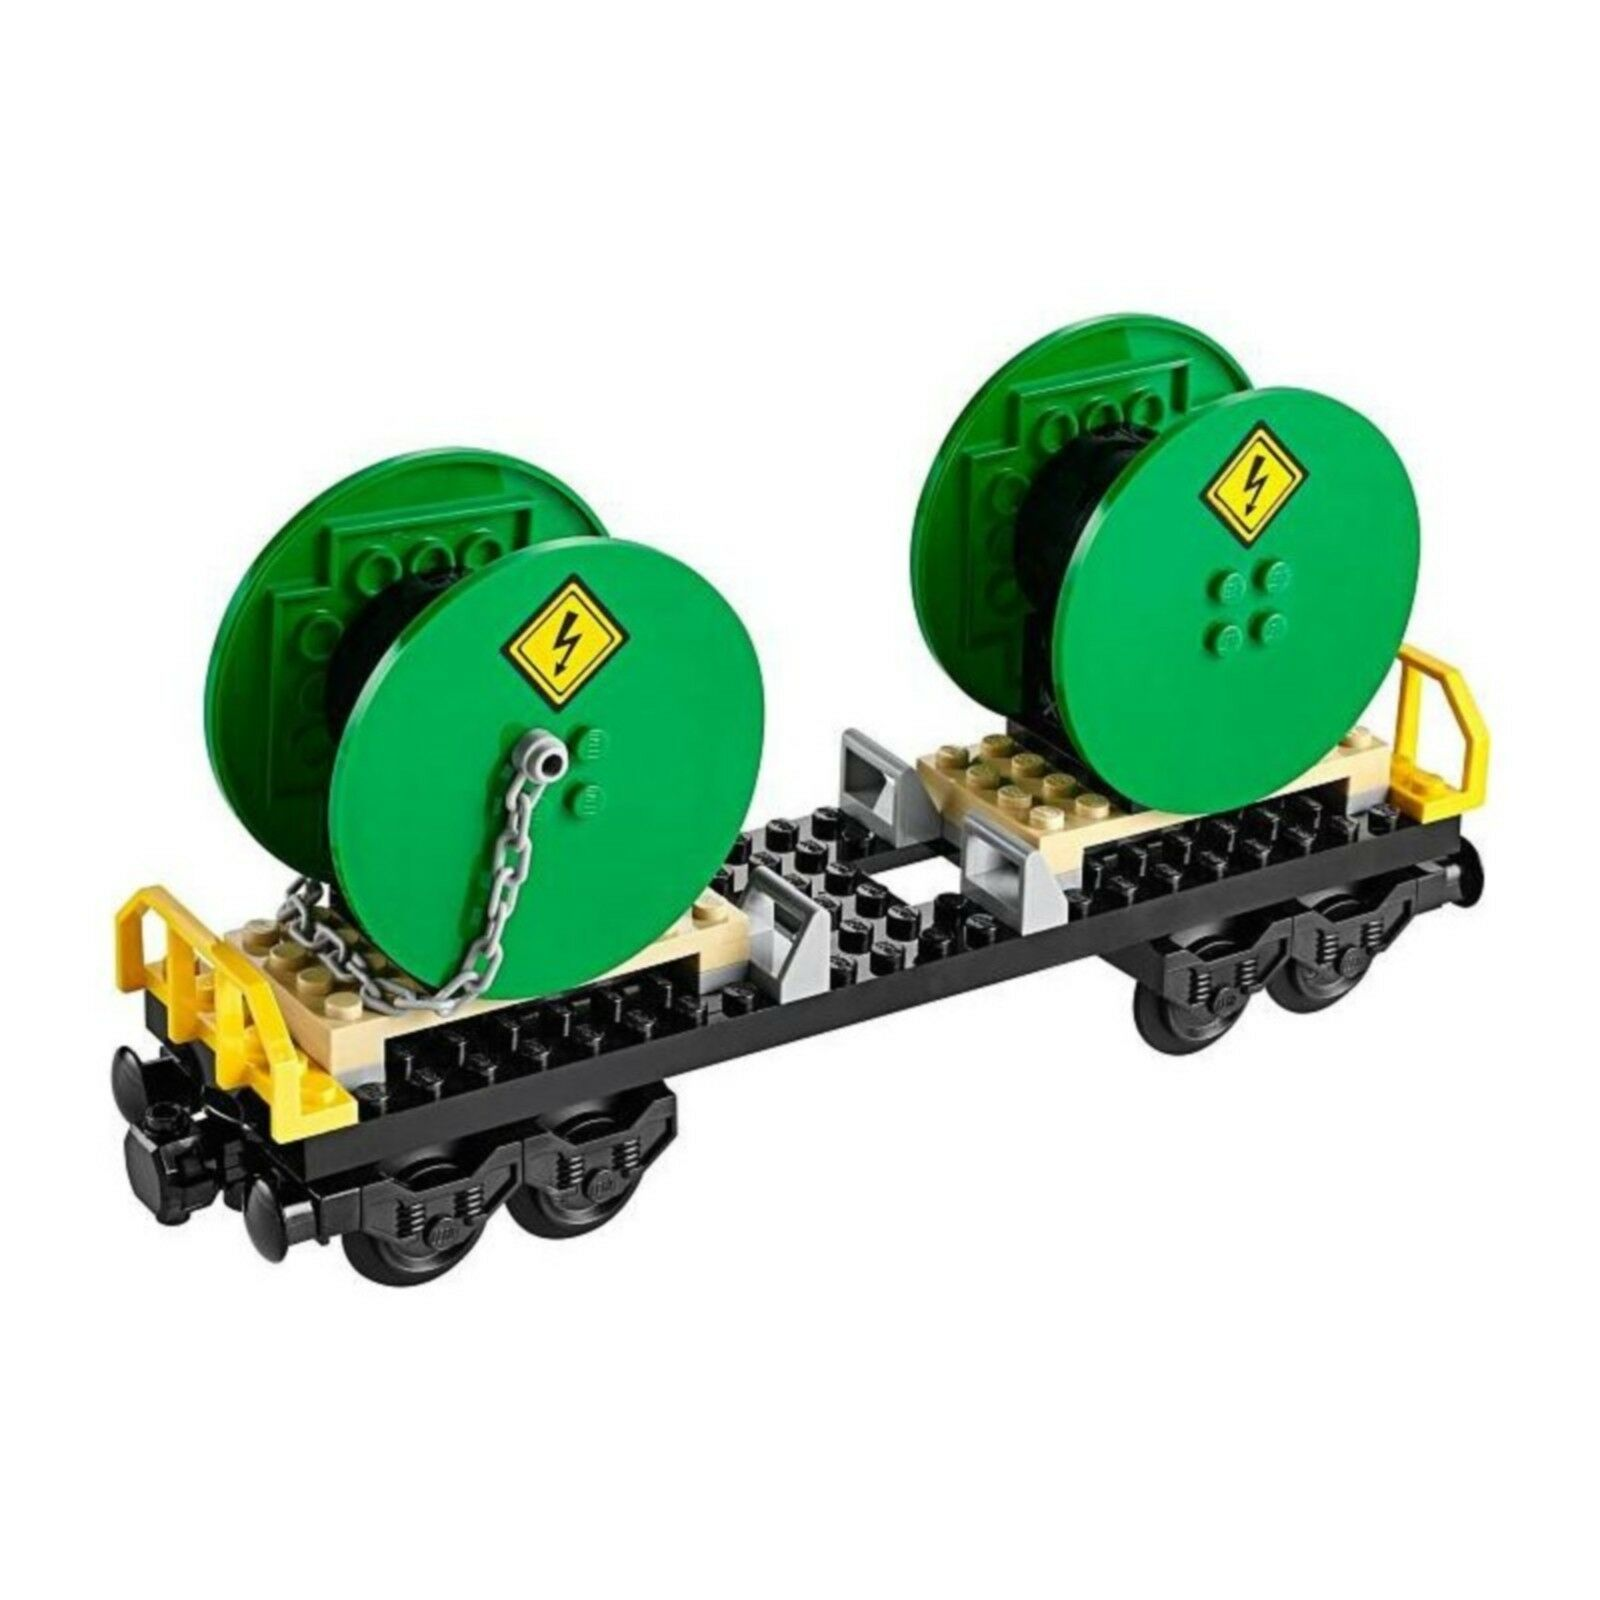 LEGO NEW TRAIN RAIL FREIGHT WAGON WITH LARGE DRUMS & INSTRUCTIONS FROM 60052